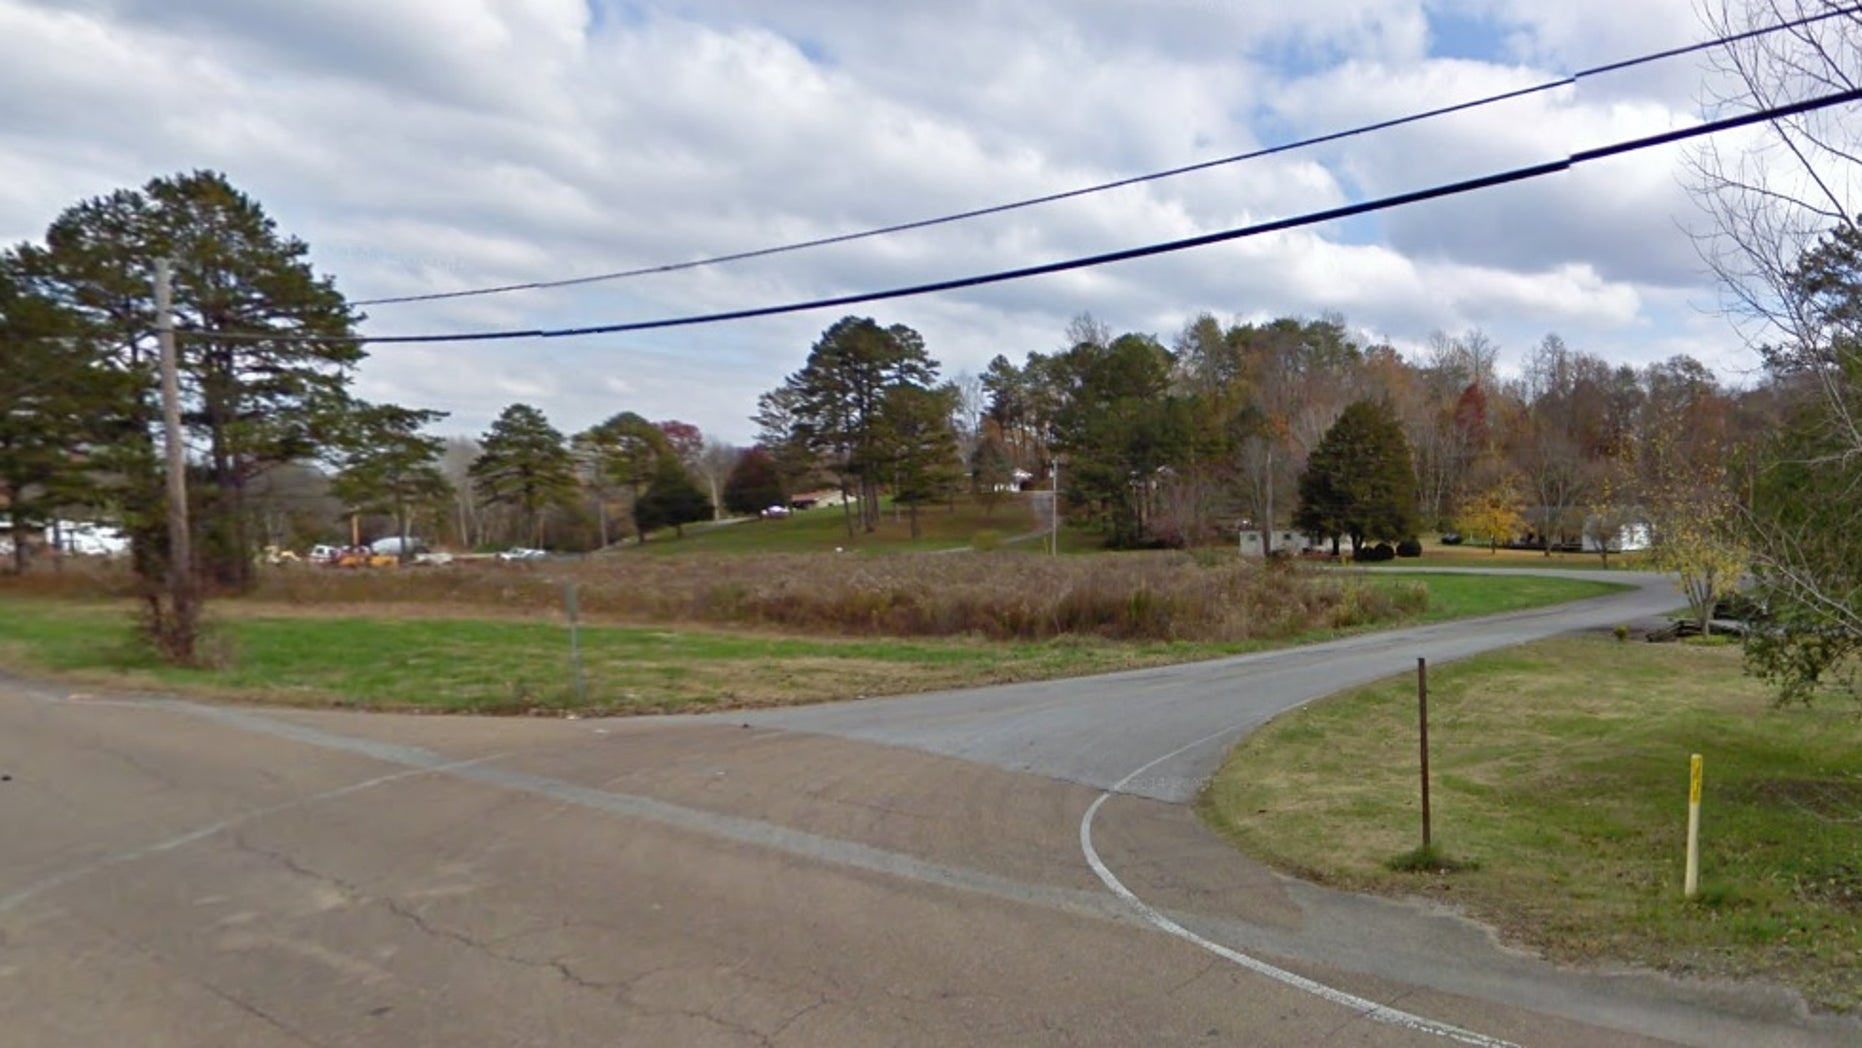 The intersection where investigators say they found the kids walking to school.